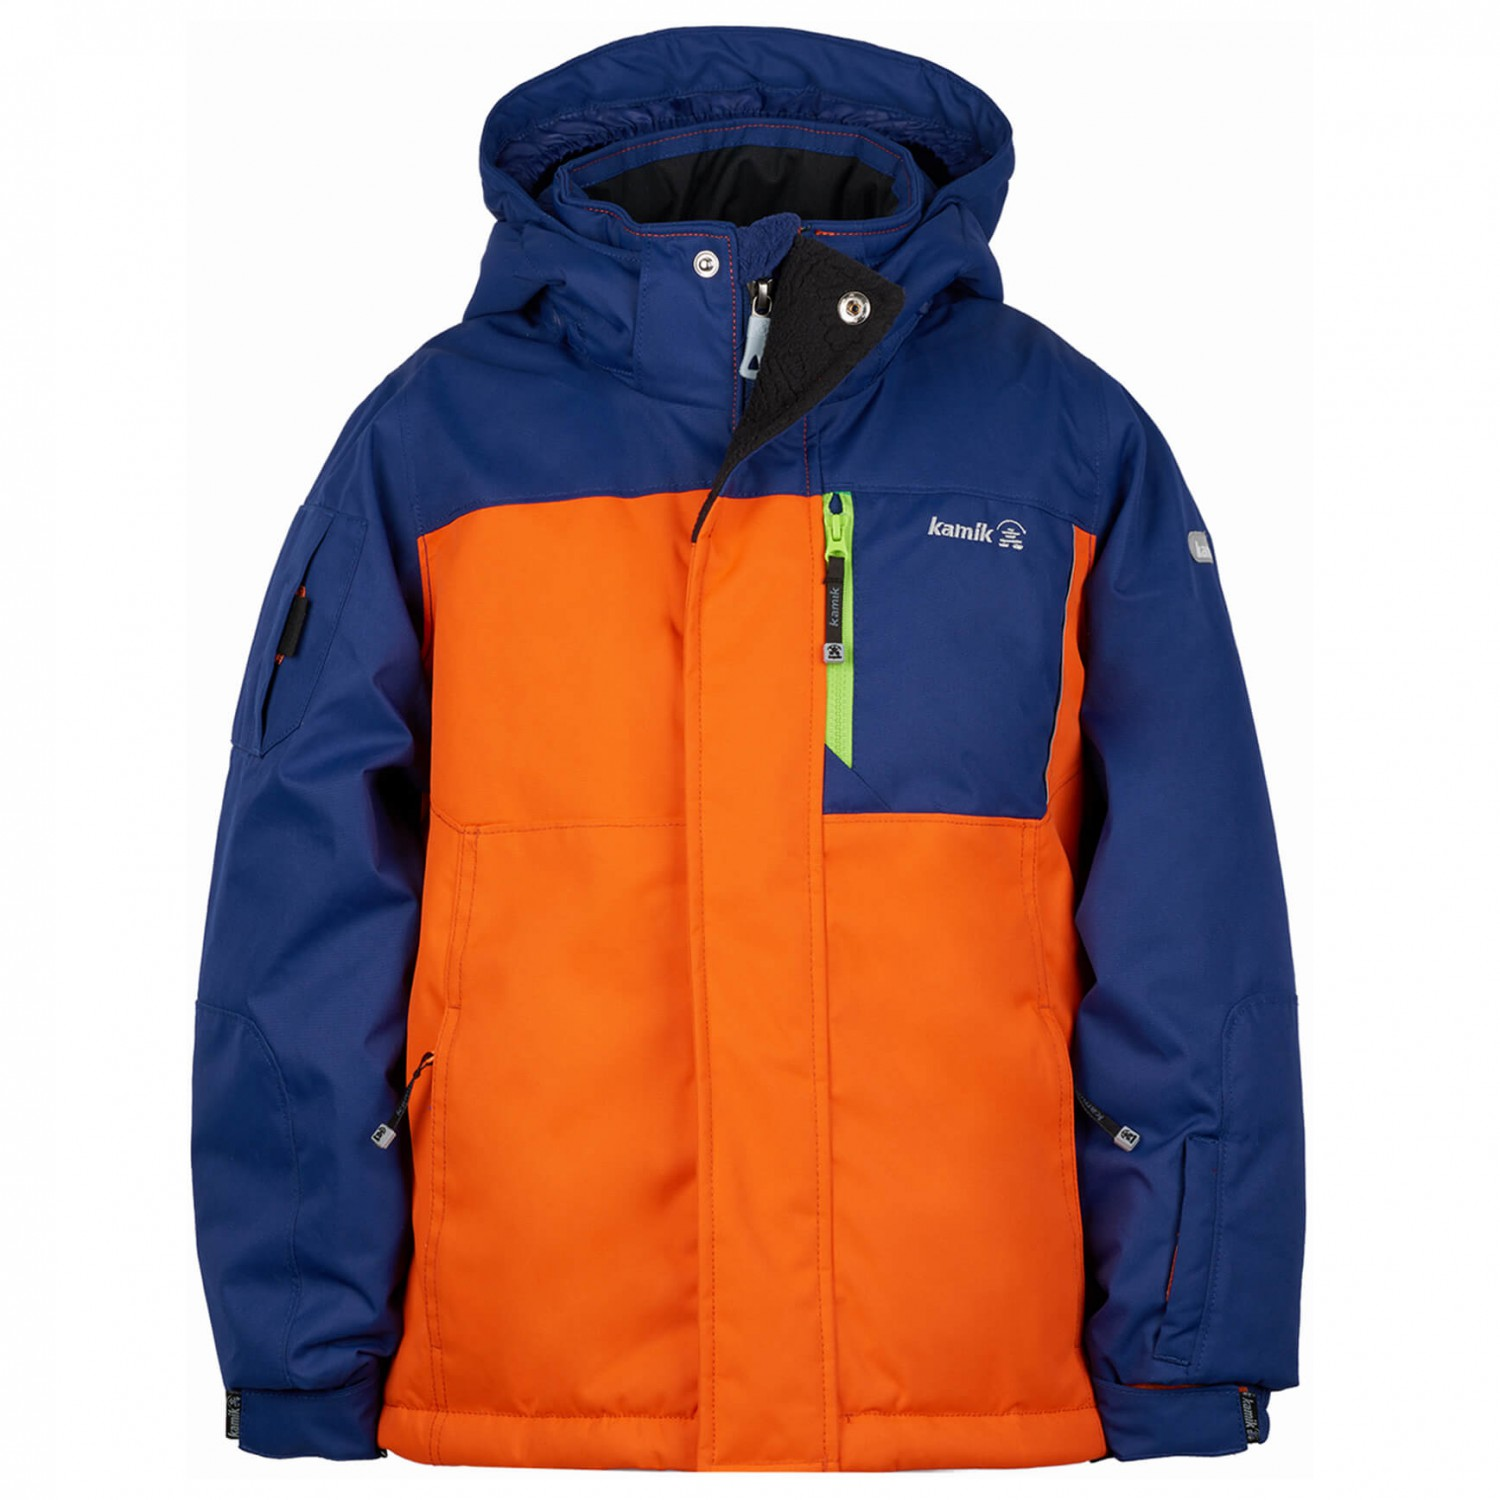 kids winter jackets, ski wear & accessories for children of all ages You'll find the best selection of kids' ski clothes at lemkecollier.ga We carry the latest slope styles that your children want – all with the quality and durability you demand.